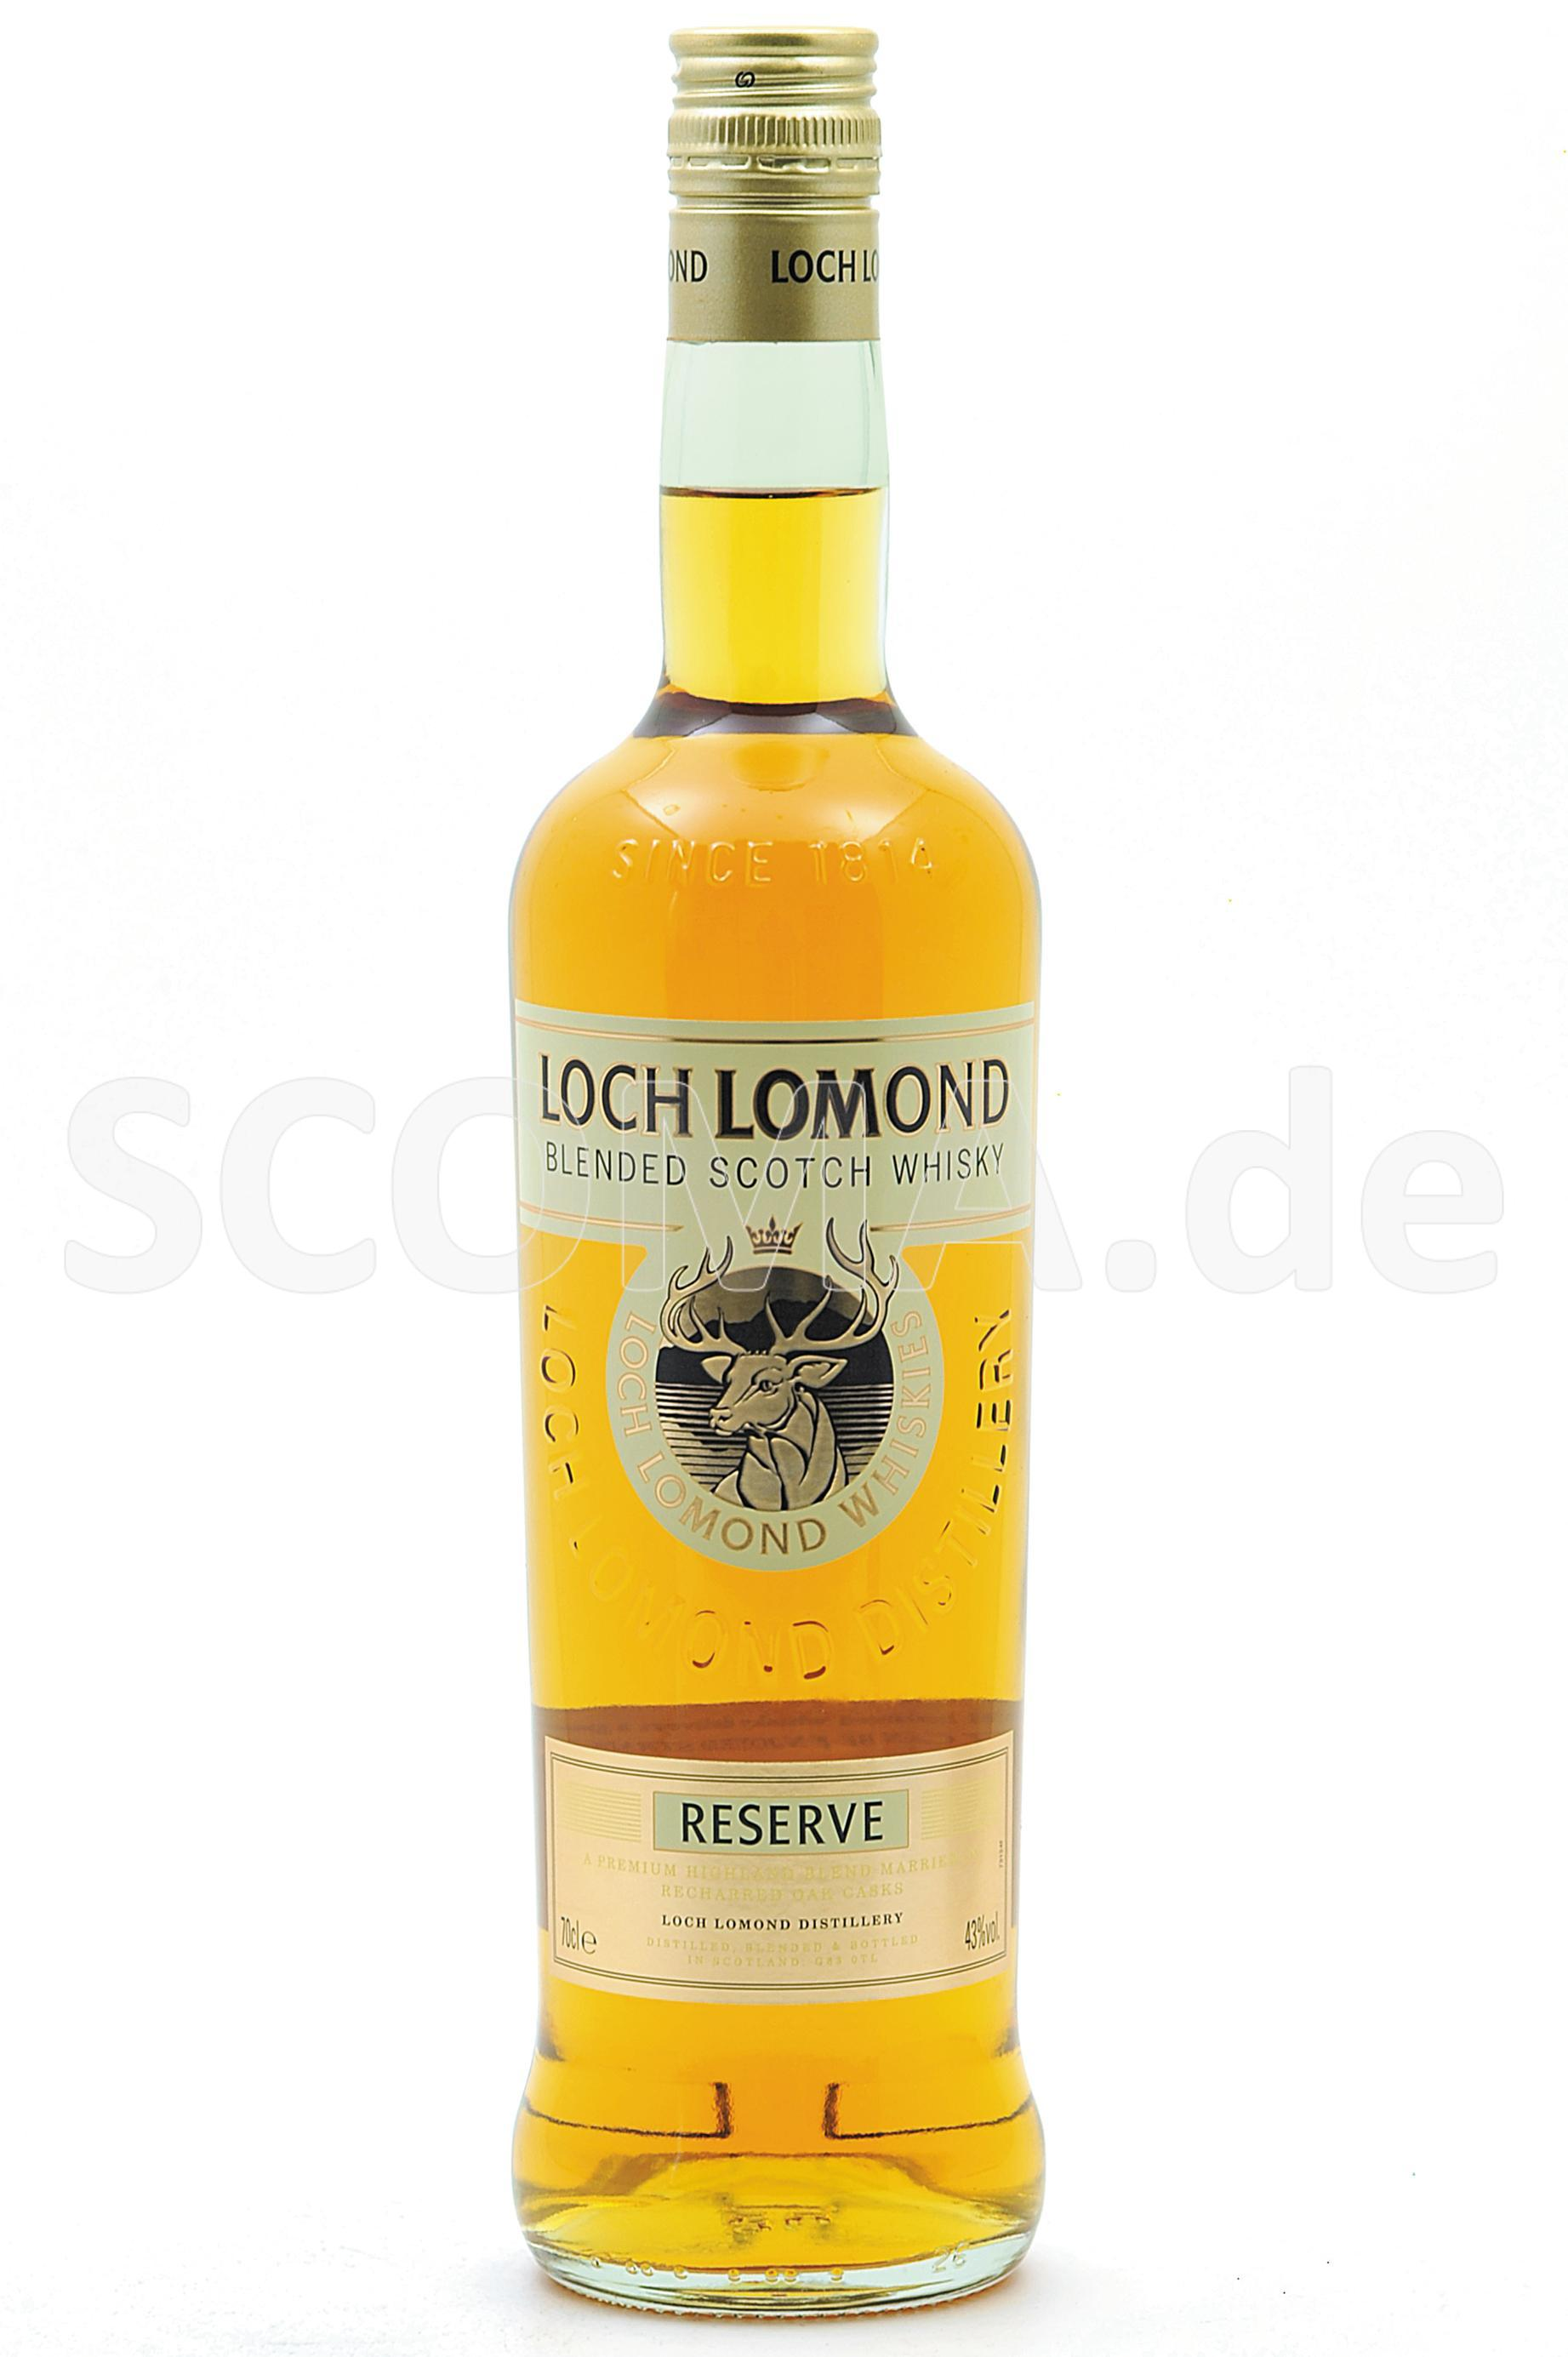 Loch Lomond Blended Scotch